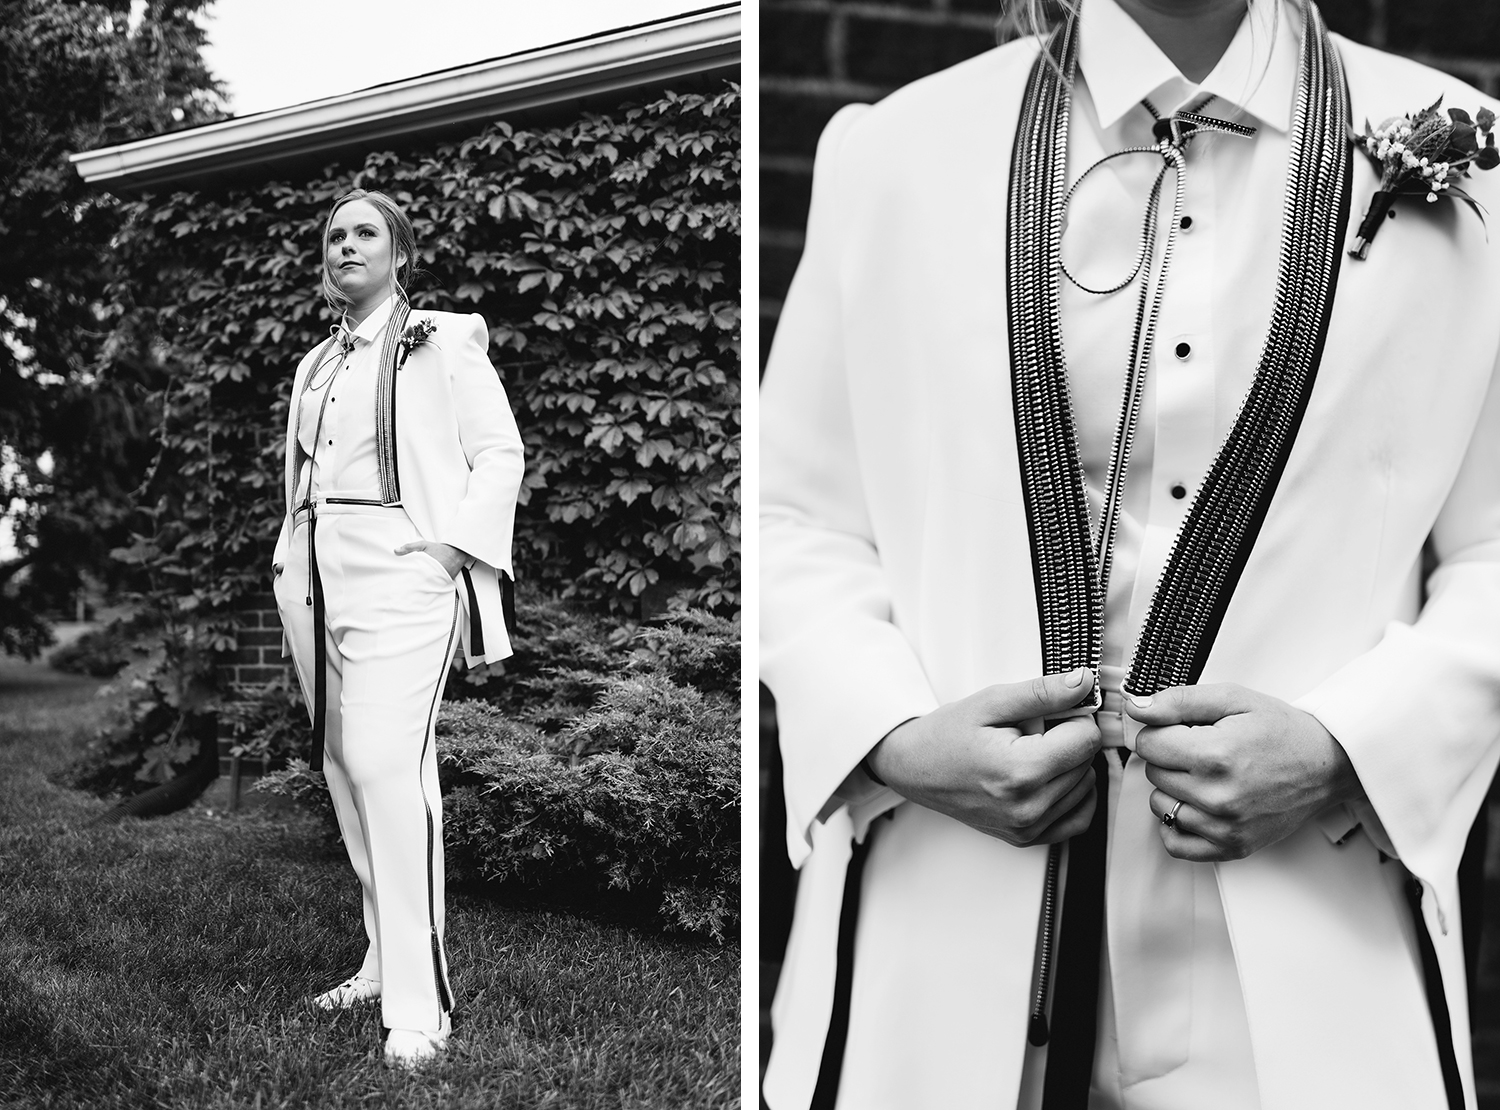 28-cambium-farms-wedding-toronto-wedding-photographer-ryanne-hollies-photography-farmhouse-rustic-vintage-boho-wedding-inspiration-bride-white-suit-ready-portrait-editorial-badass-suit-details-zippers-bw.jpg